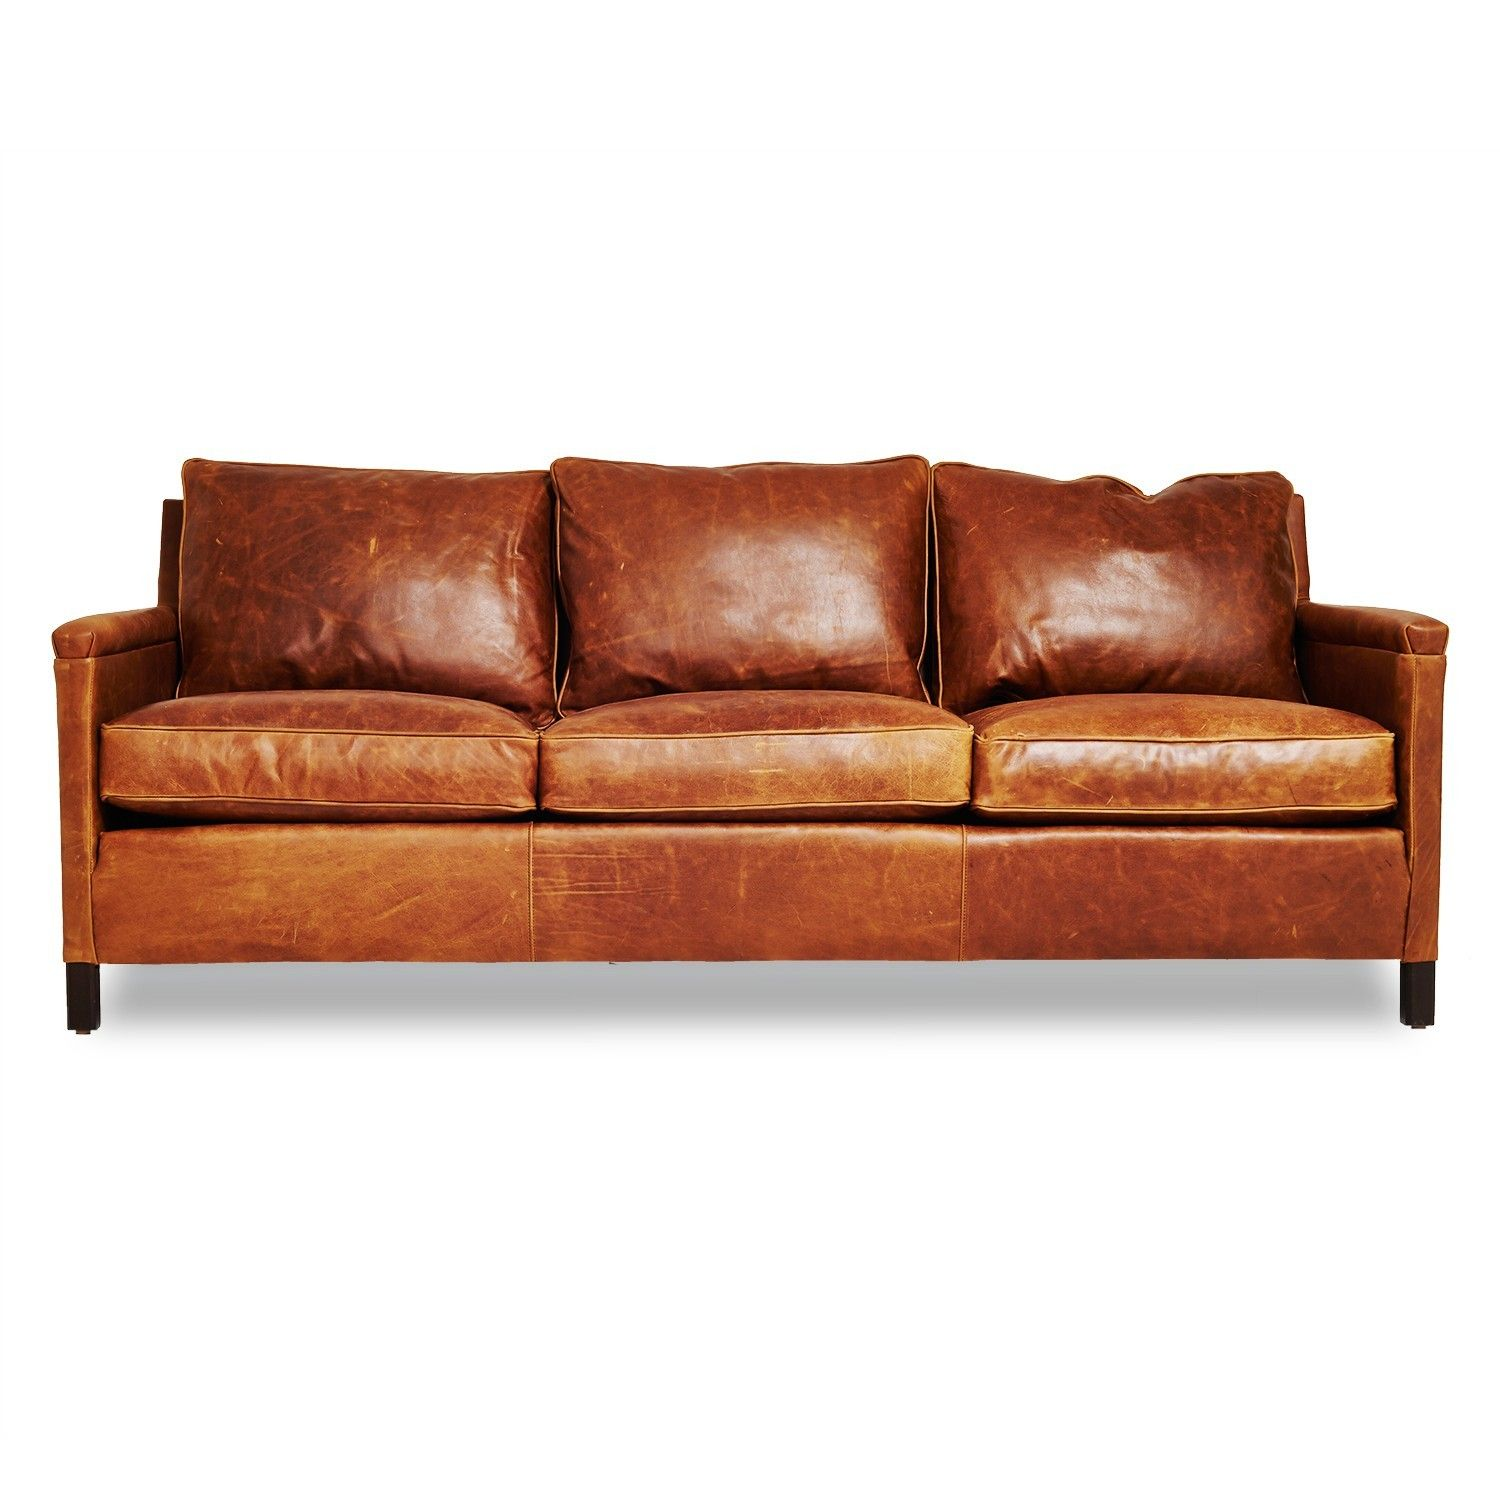 Best Burnt Orange Leather Sofa Used Rustic Brown Leather 400 x 300